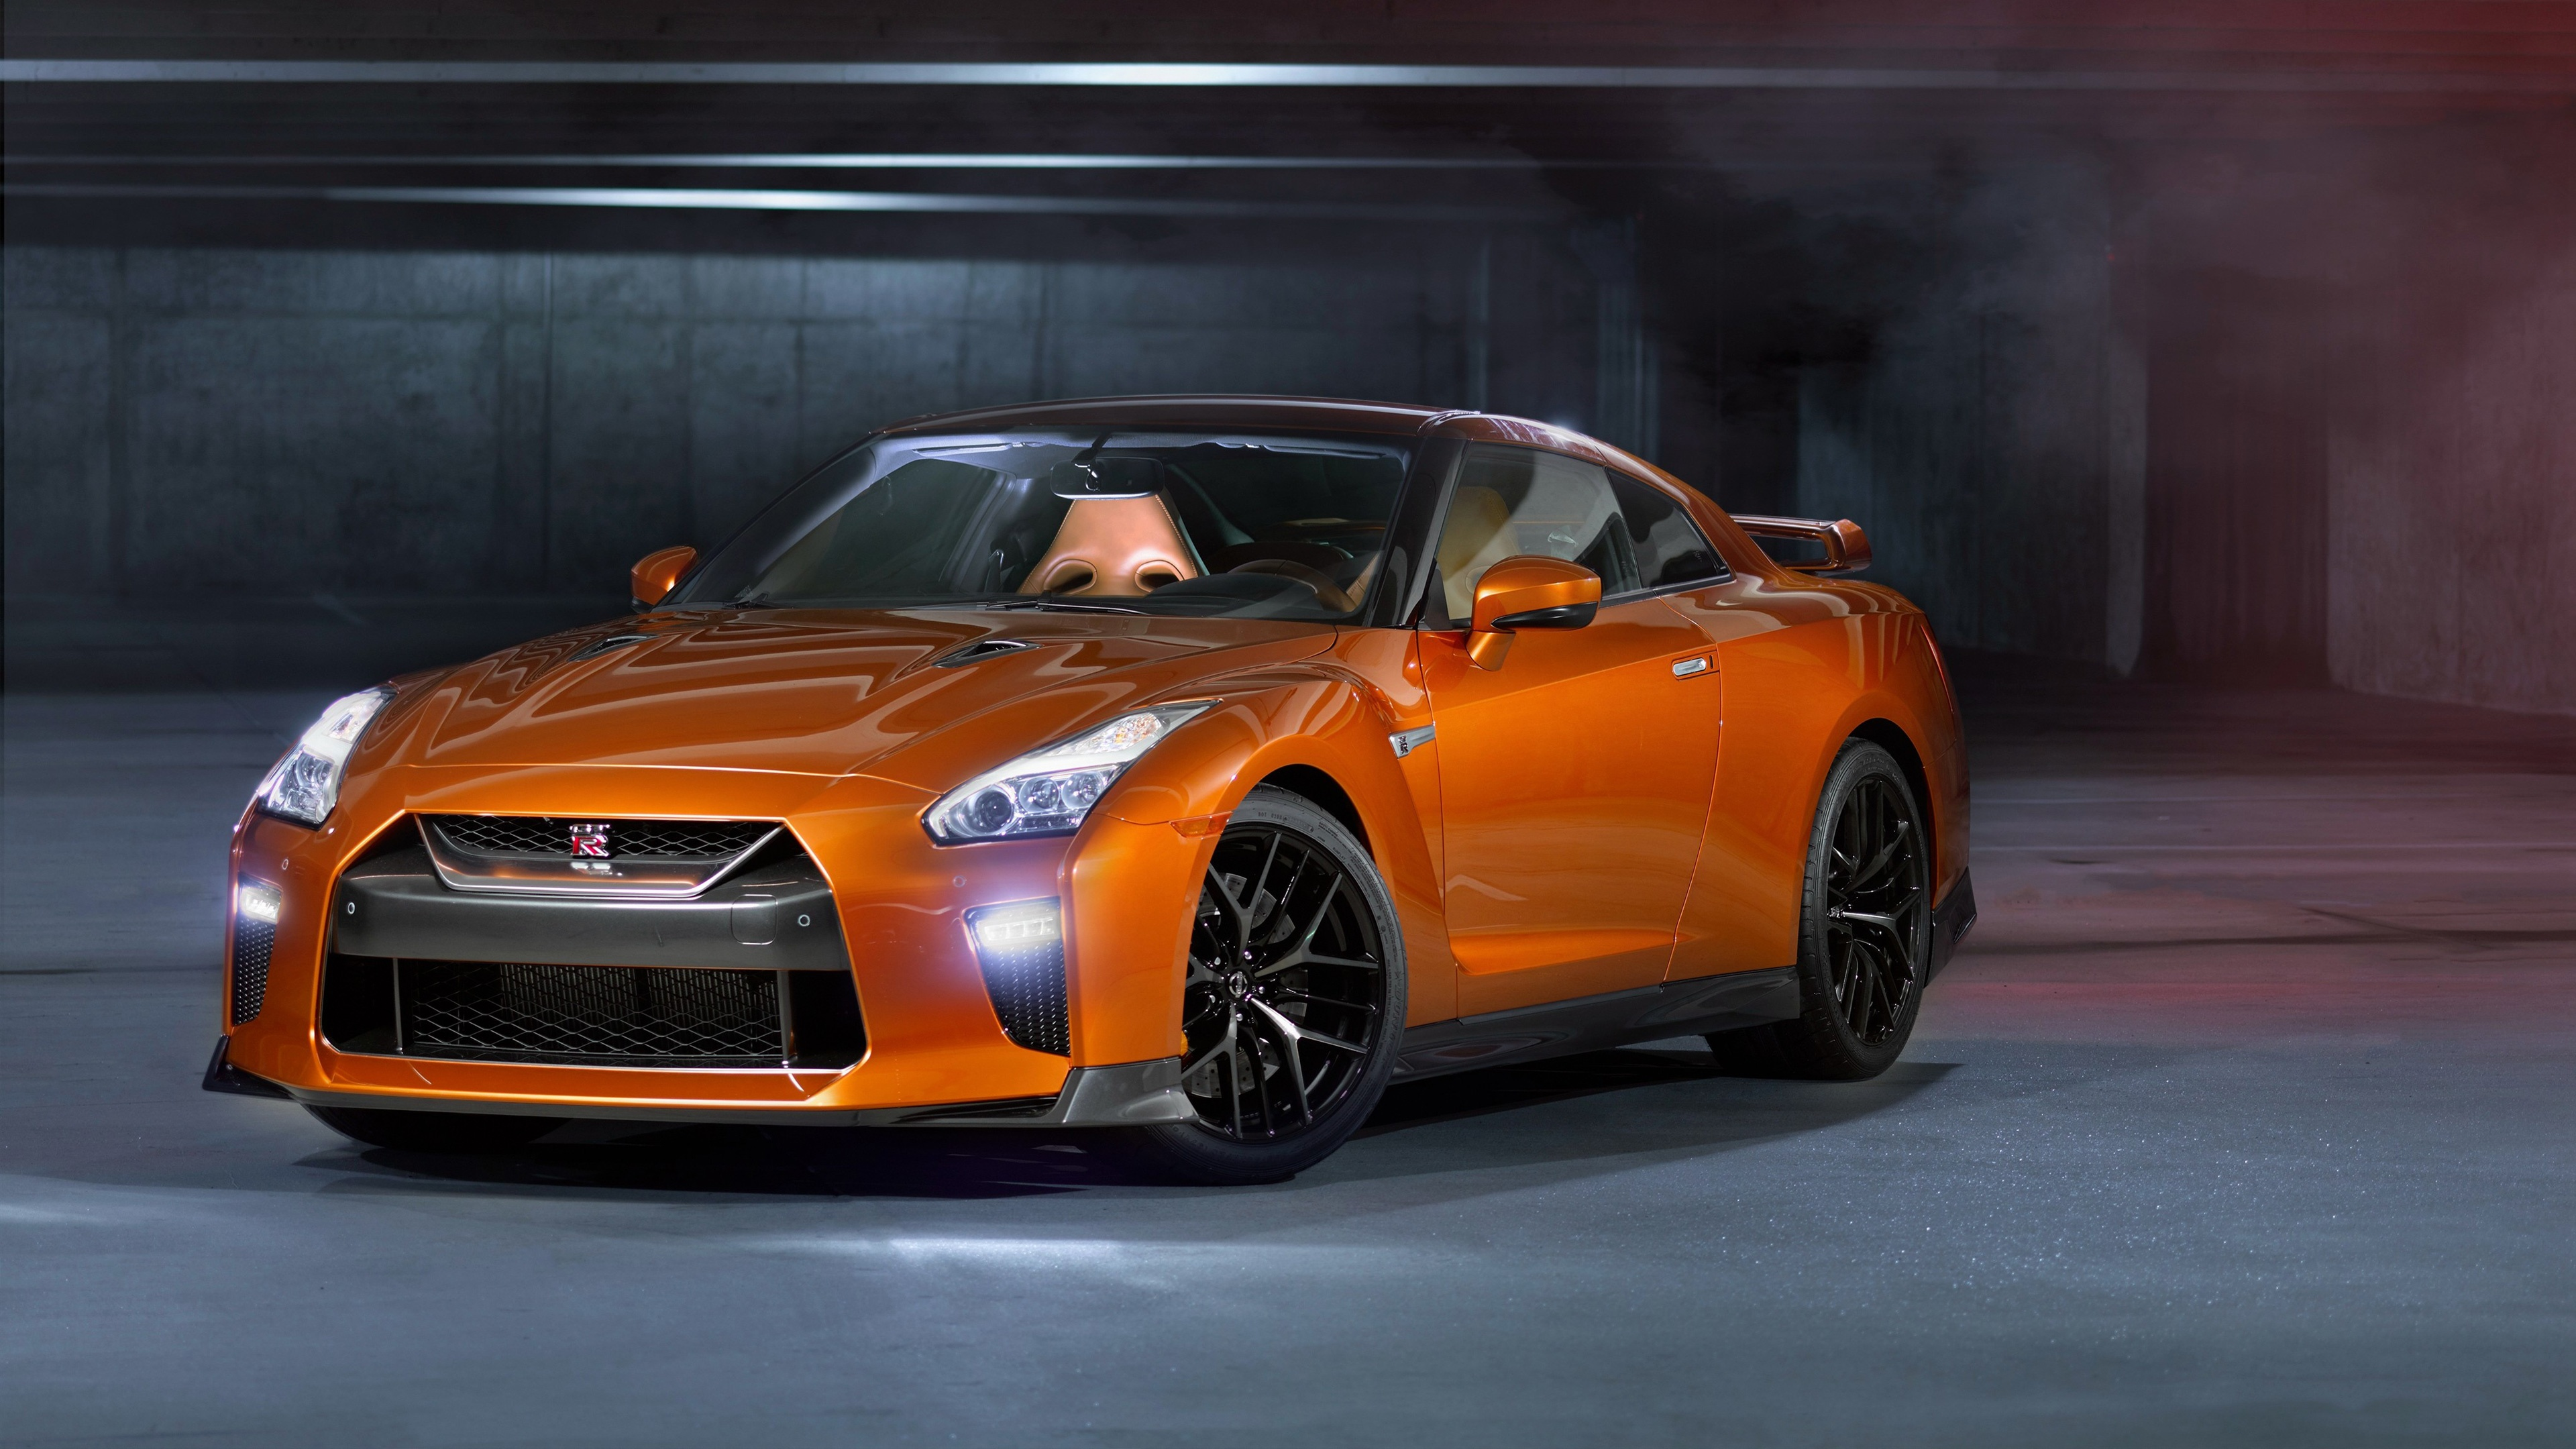 2017 Nissan Gt R Wallpapers In Jpg Format For Free Download